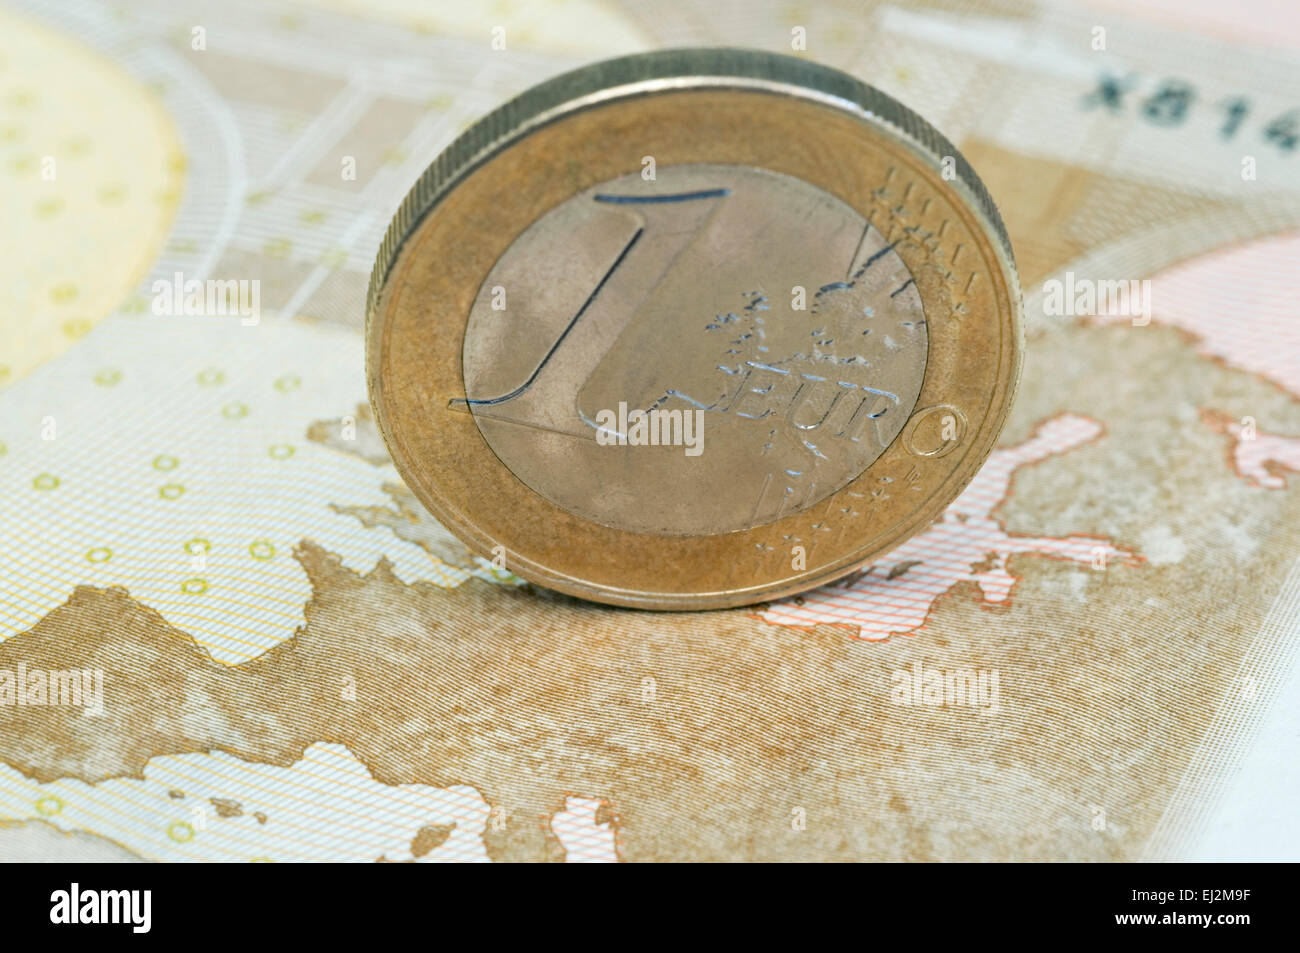 one euro coin standing on the map of a banknote - Stock Image